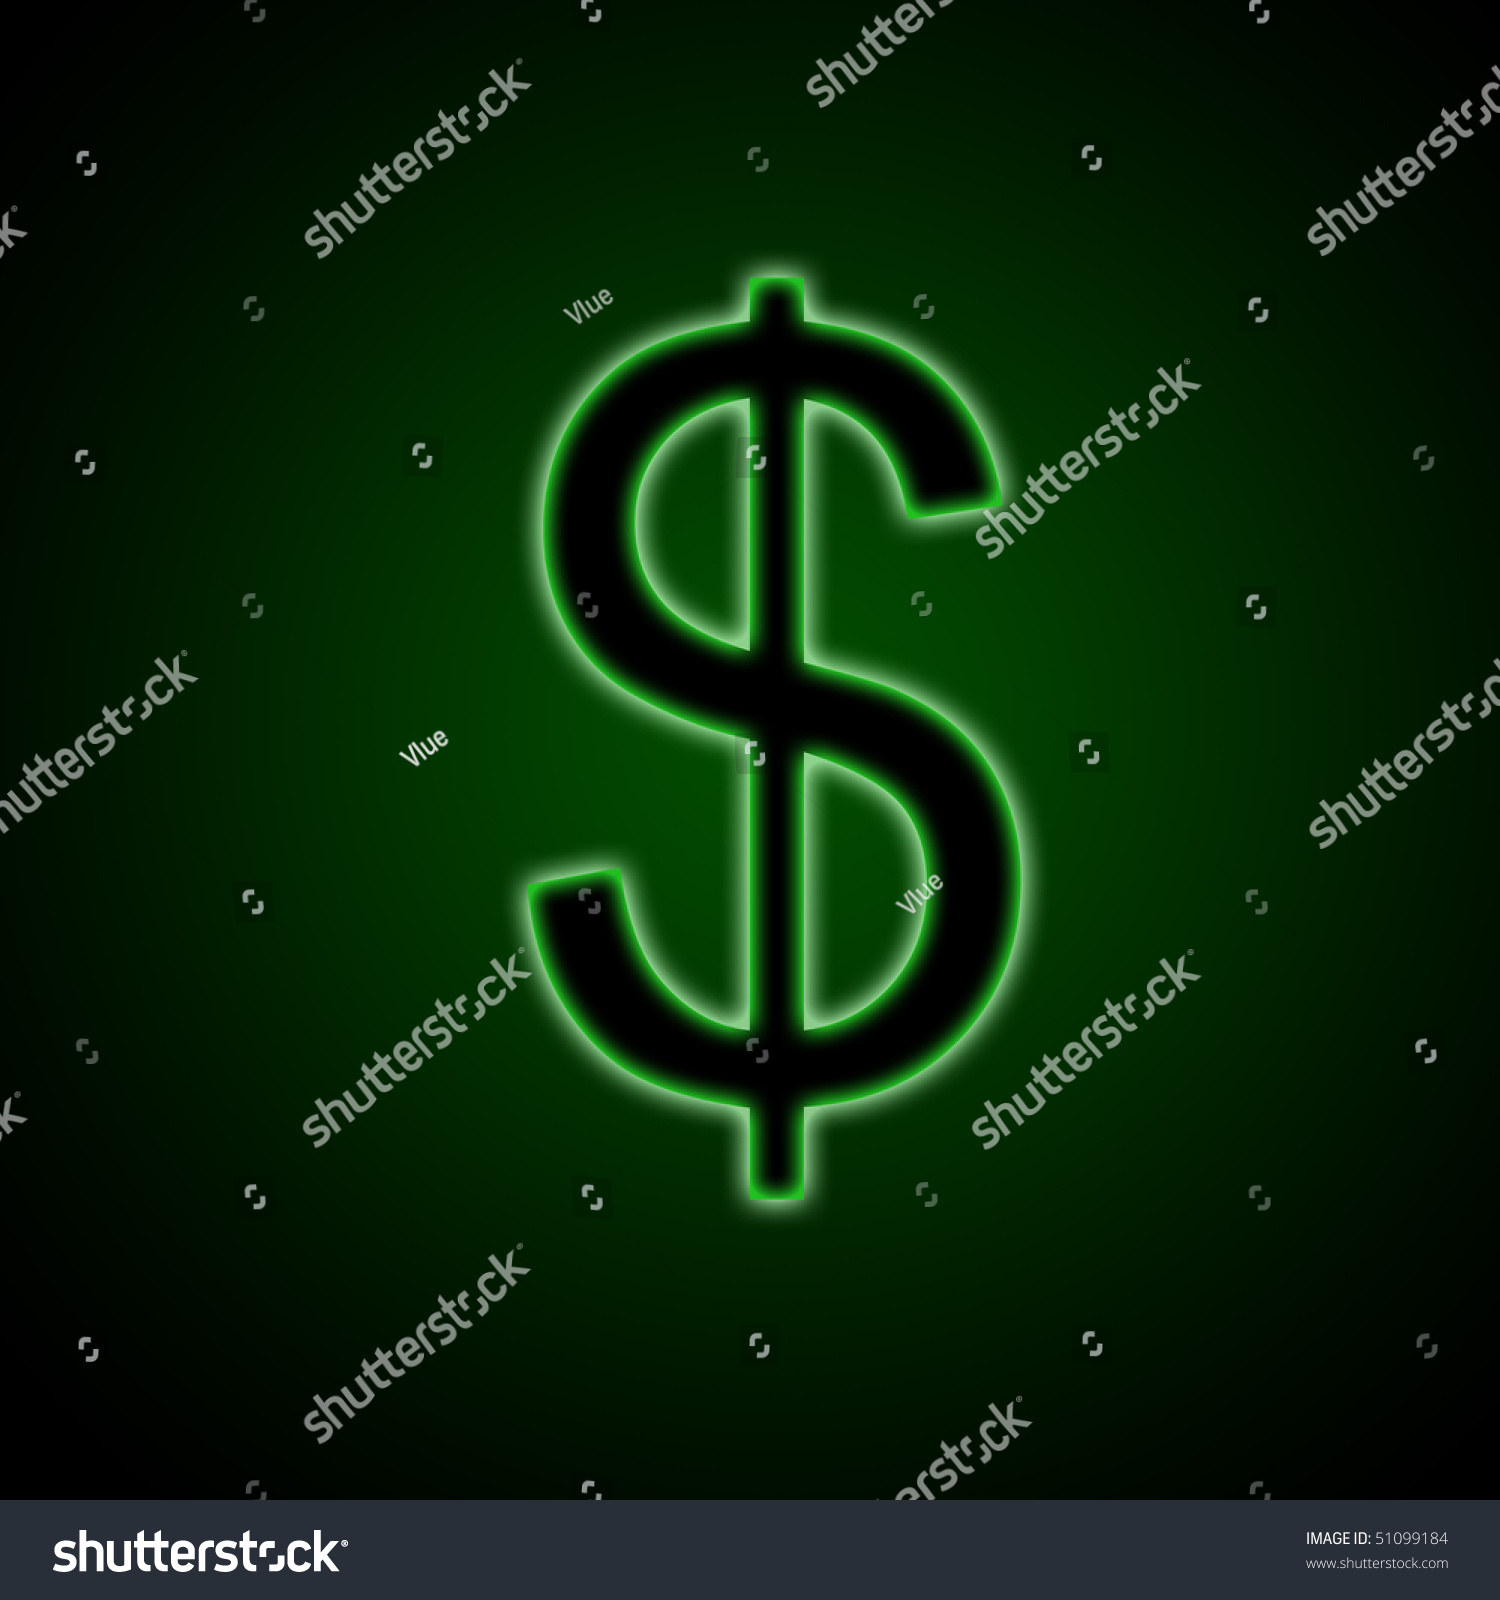 Abstract computer generated background illustration american stock abstract computer generated background illustration of the american dollar symbol sign on a green background biocorpaavc